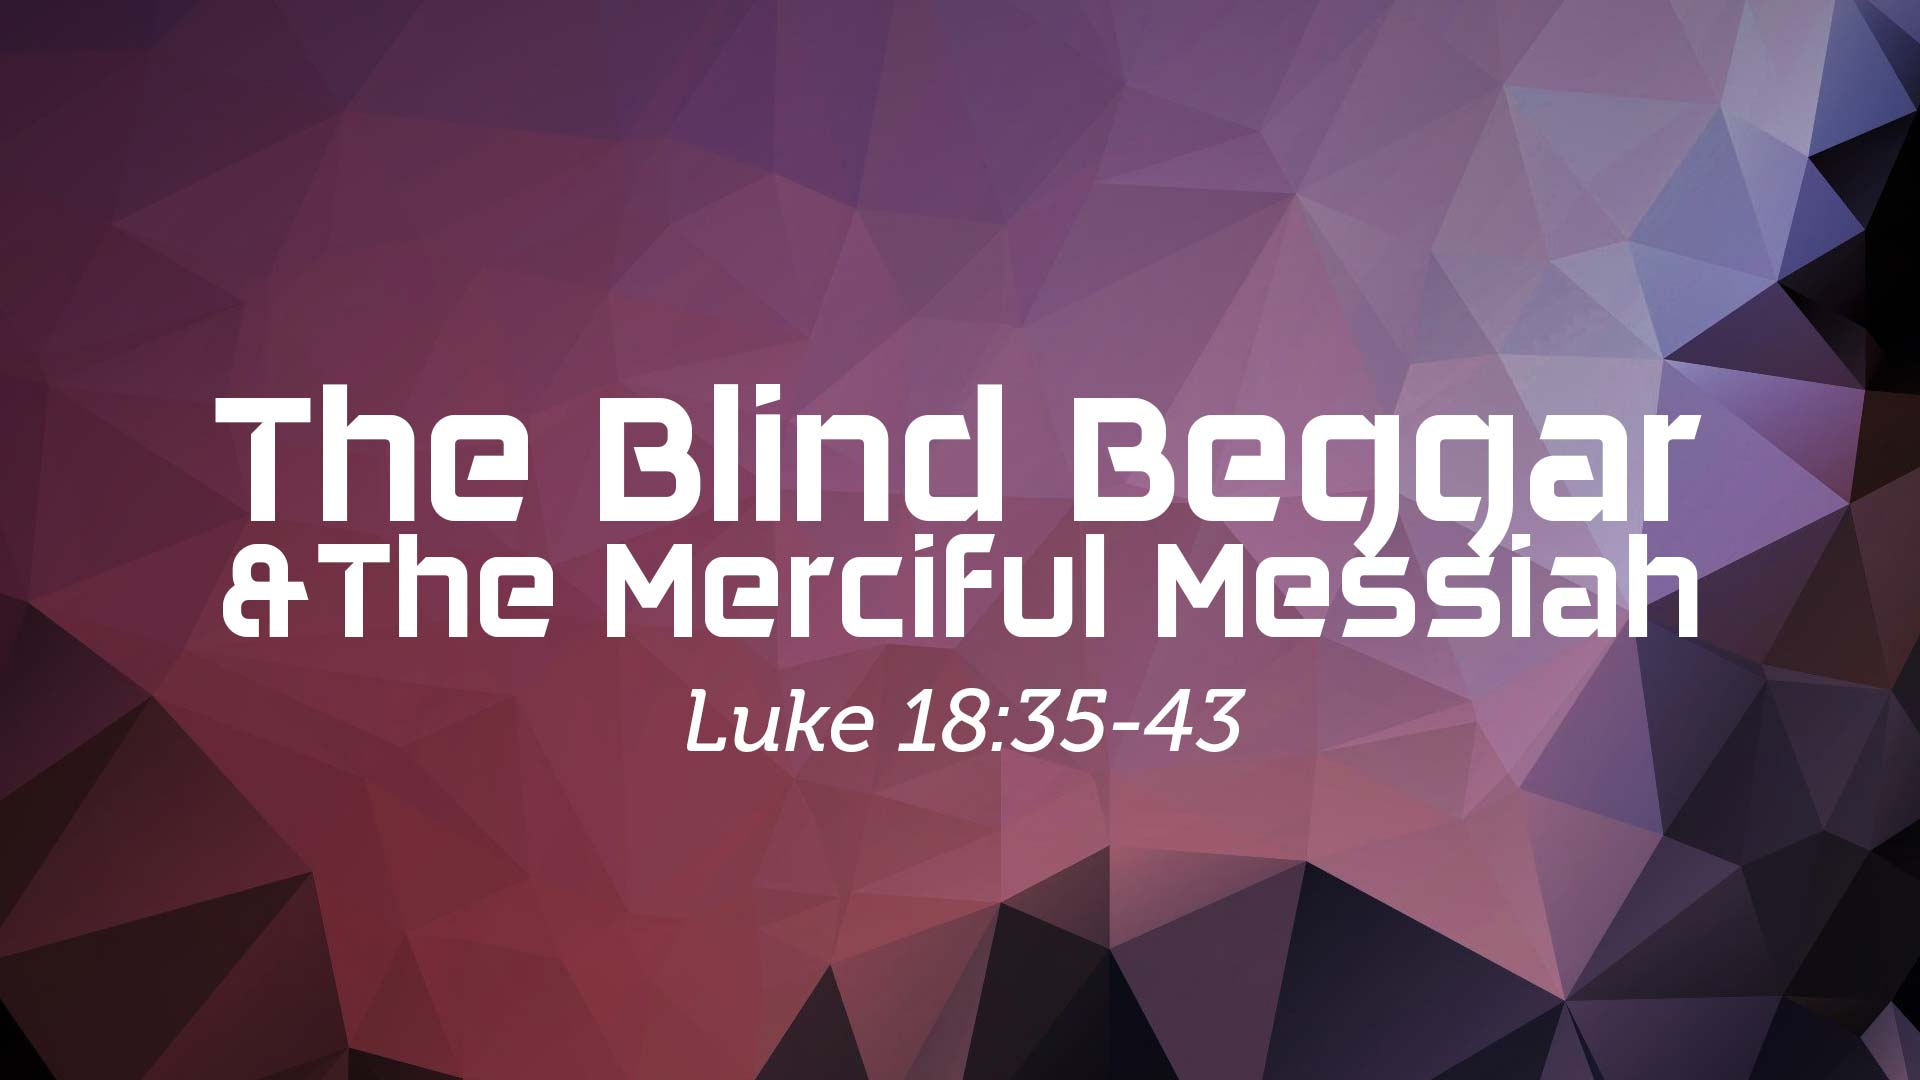 The Blind Beggar & The Merciful Messiah